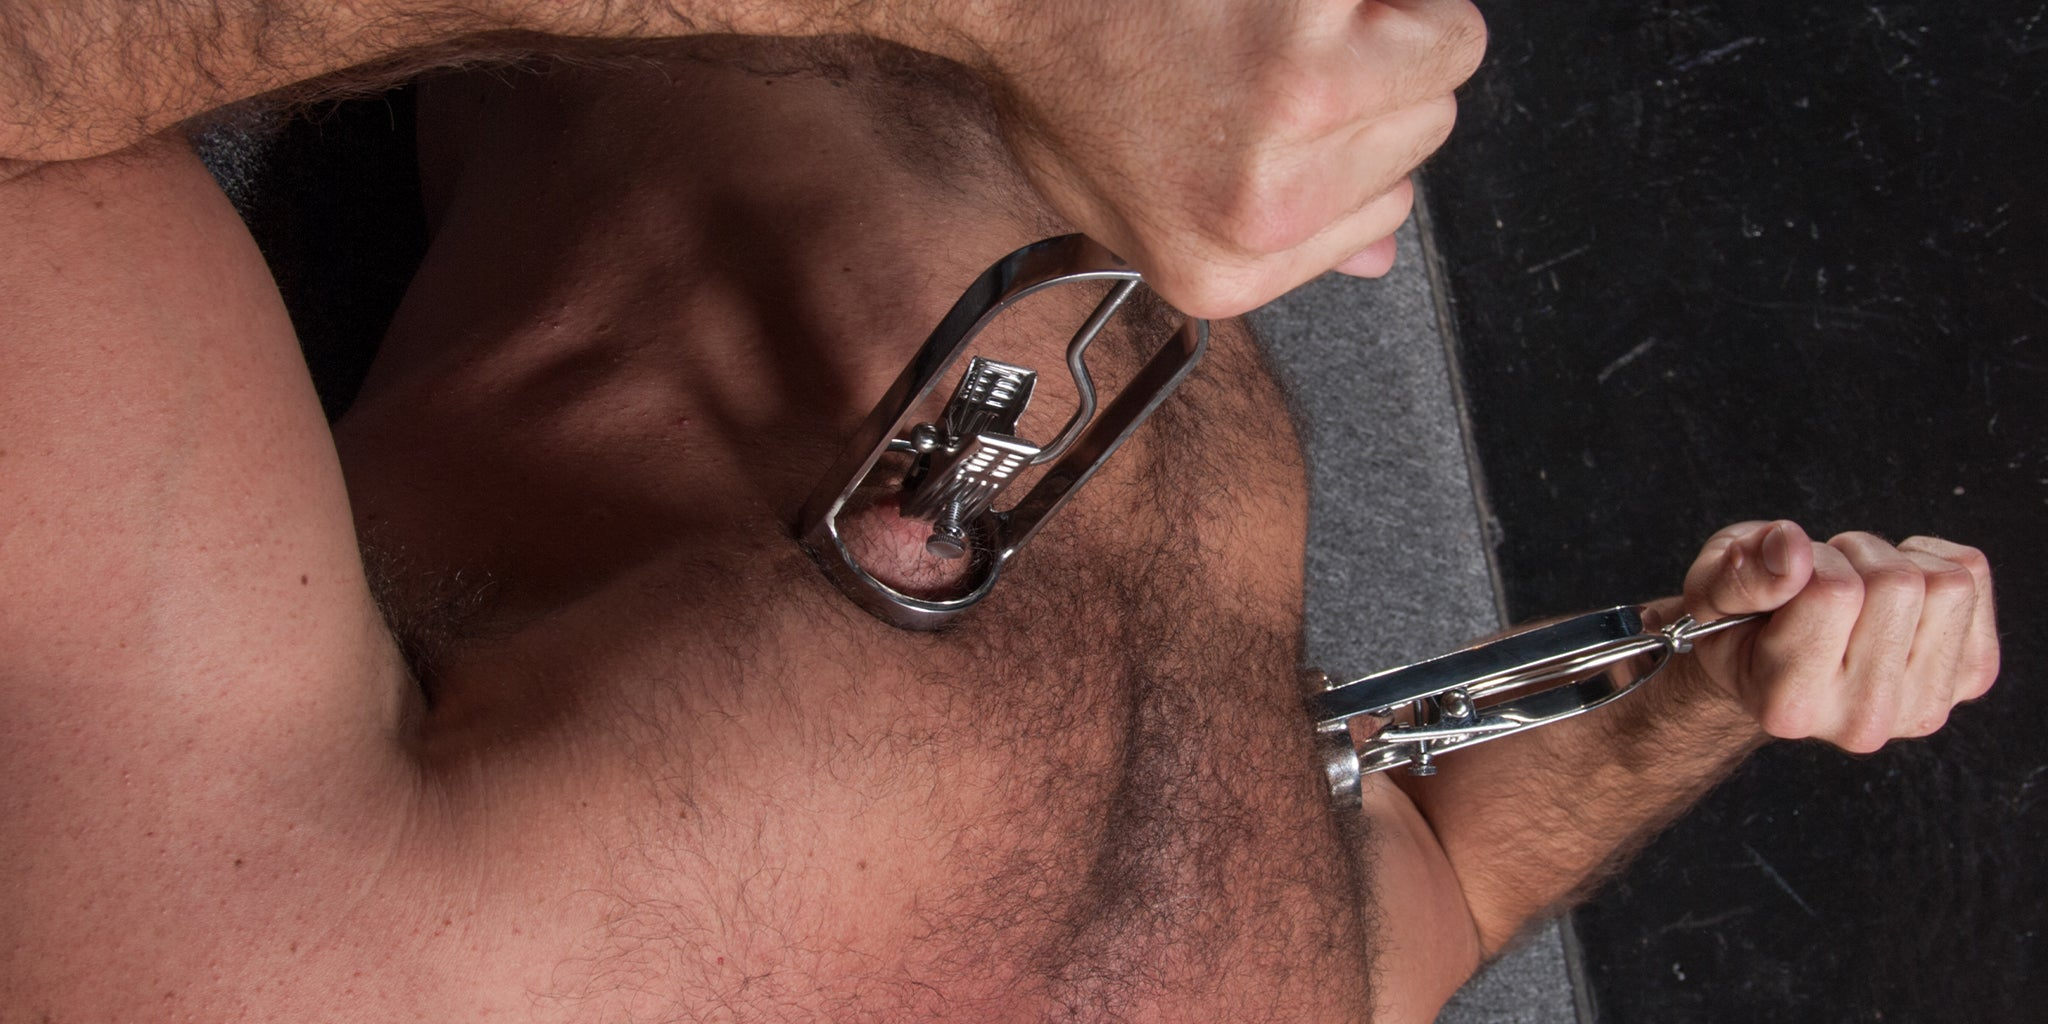 Male Stockroom Nipple Toys: Nipple Clamps, Nipple Suction, Body Clamps, Clothespin Clamps, and more